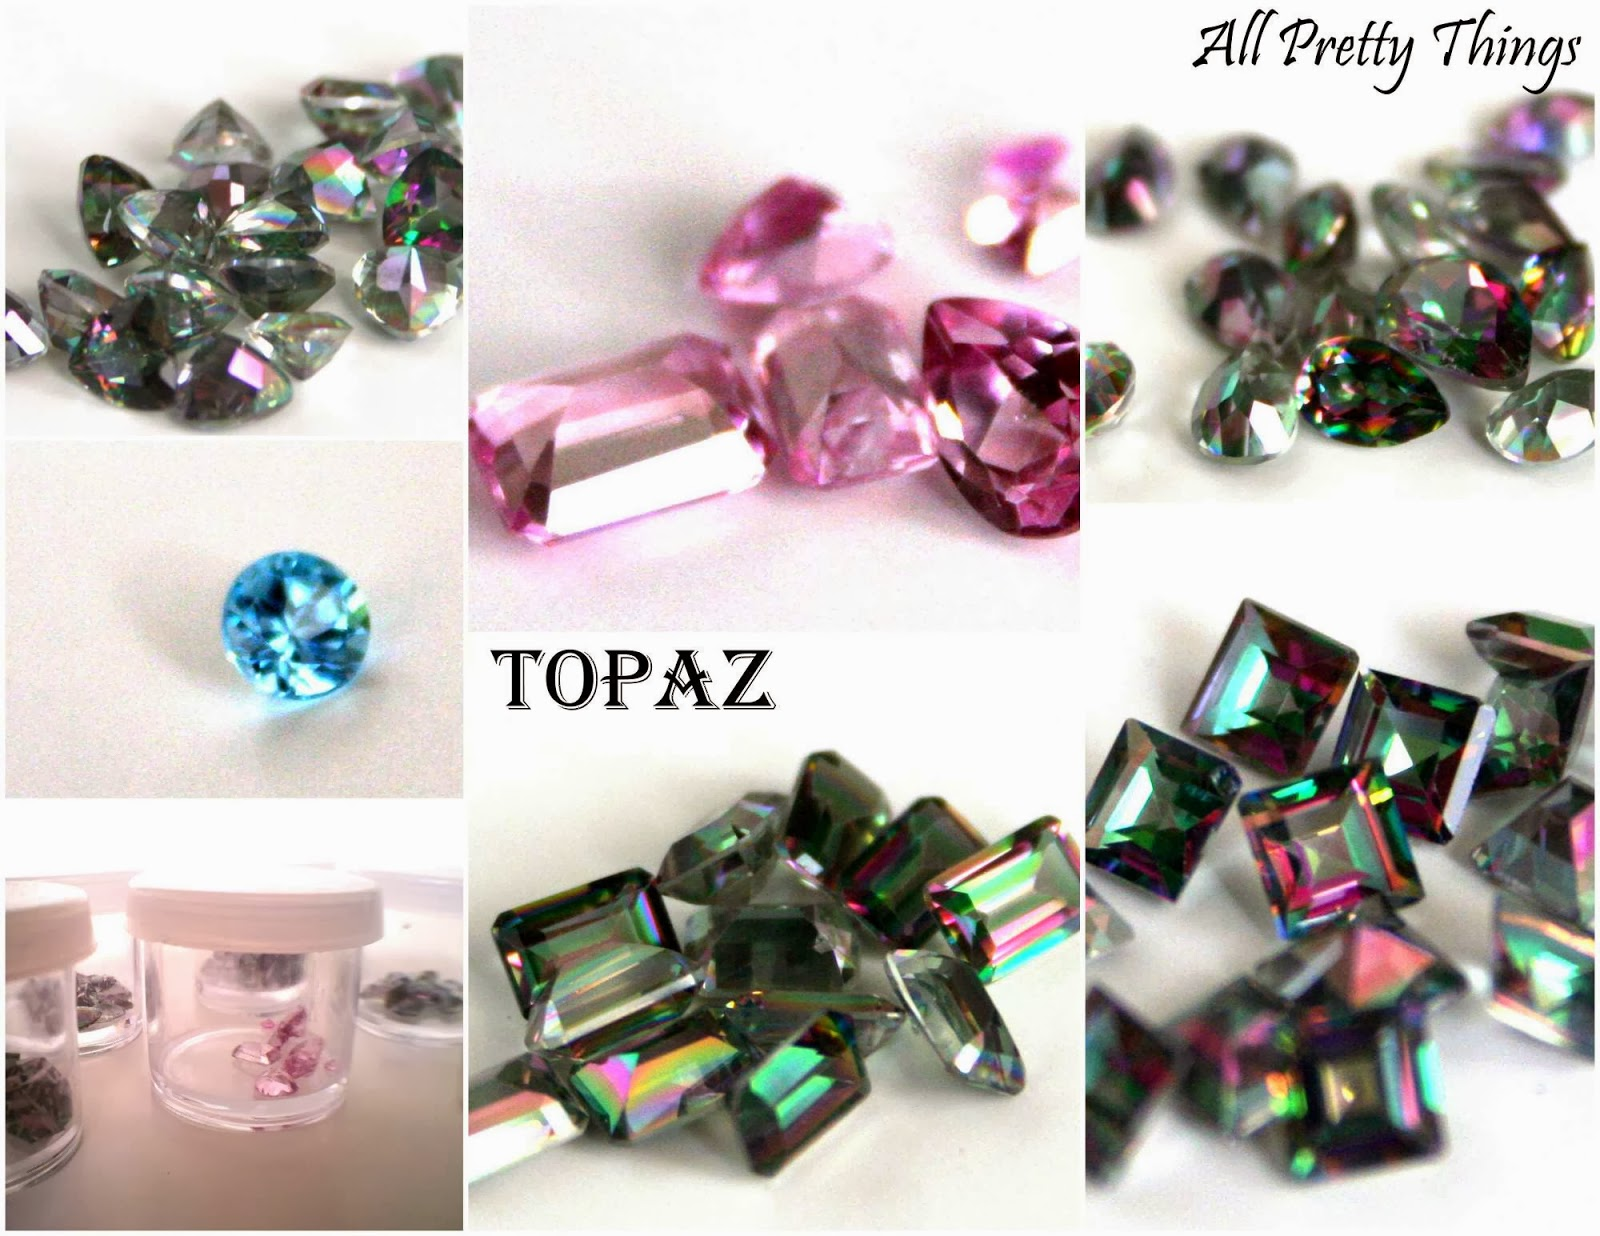 Topaz crystals :: All pretty Things